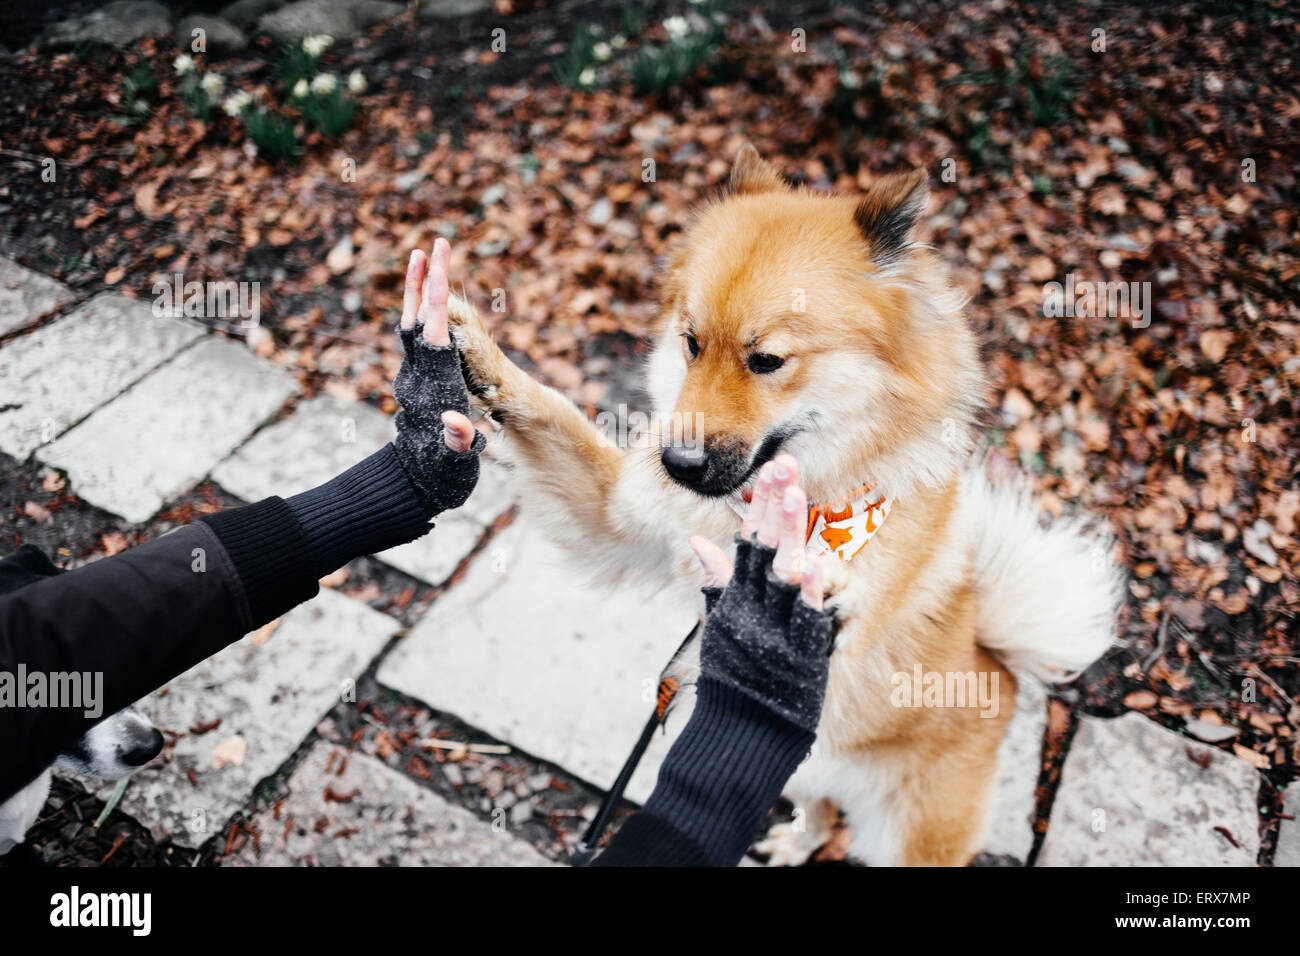 Cropped image of hands touching Eurasier rearing up at park - Stock Image